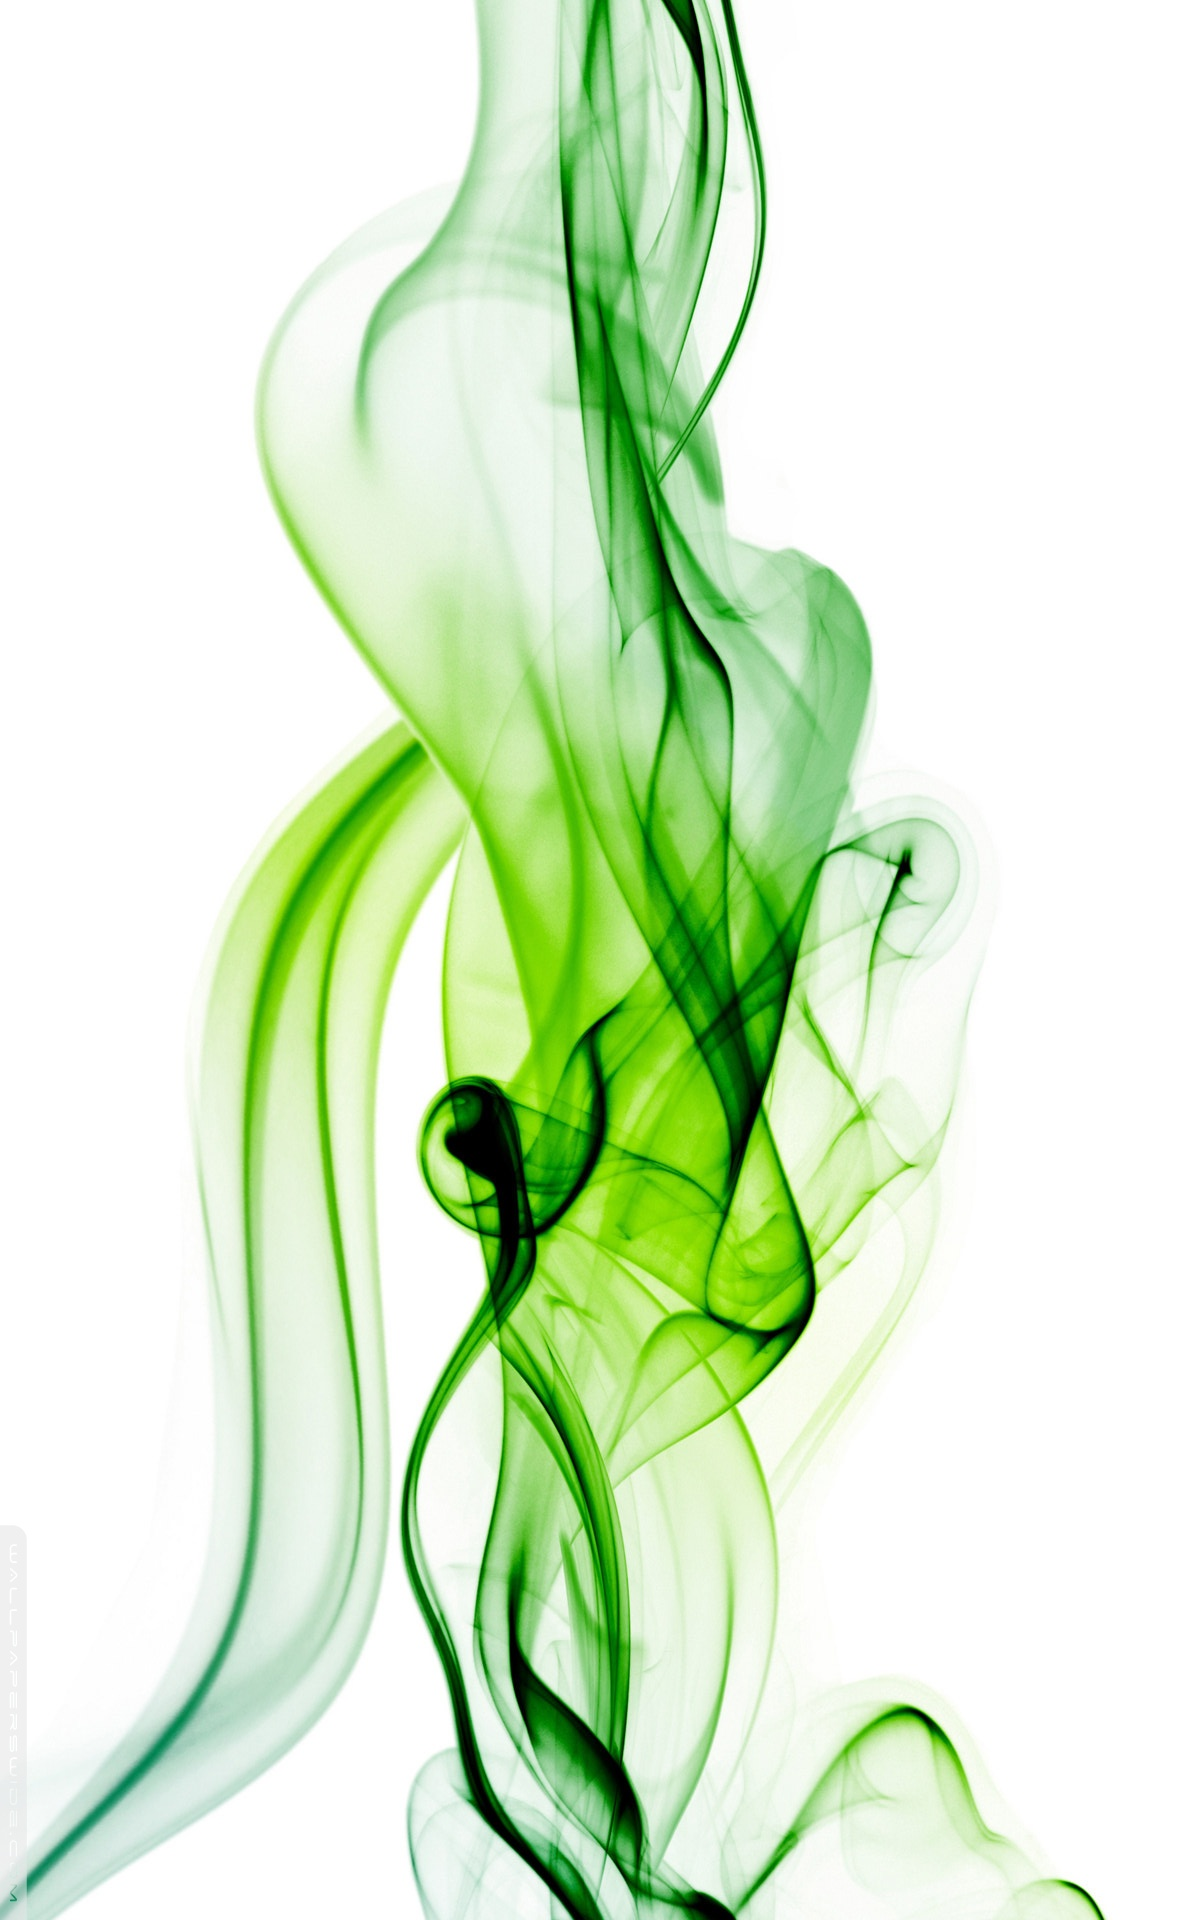 Green Anime Wallpaper Vape Wallpapers High Quality Download Free